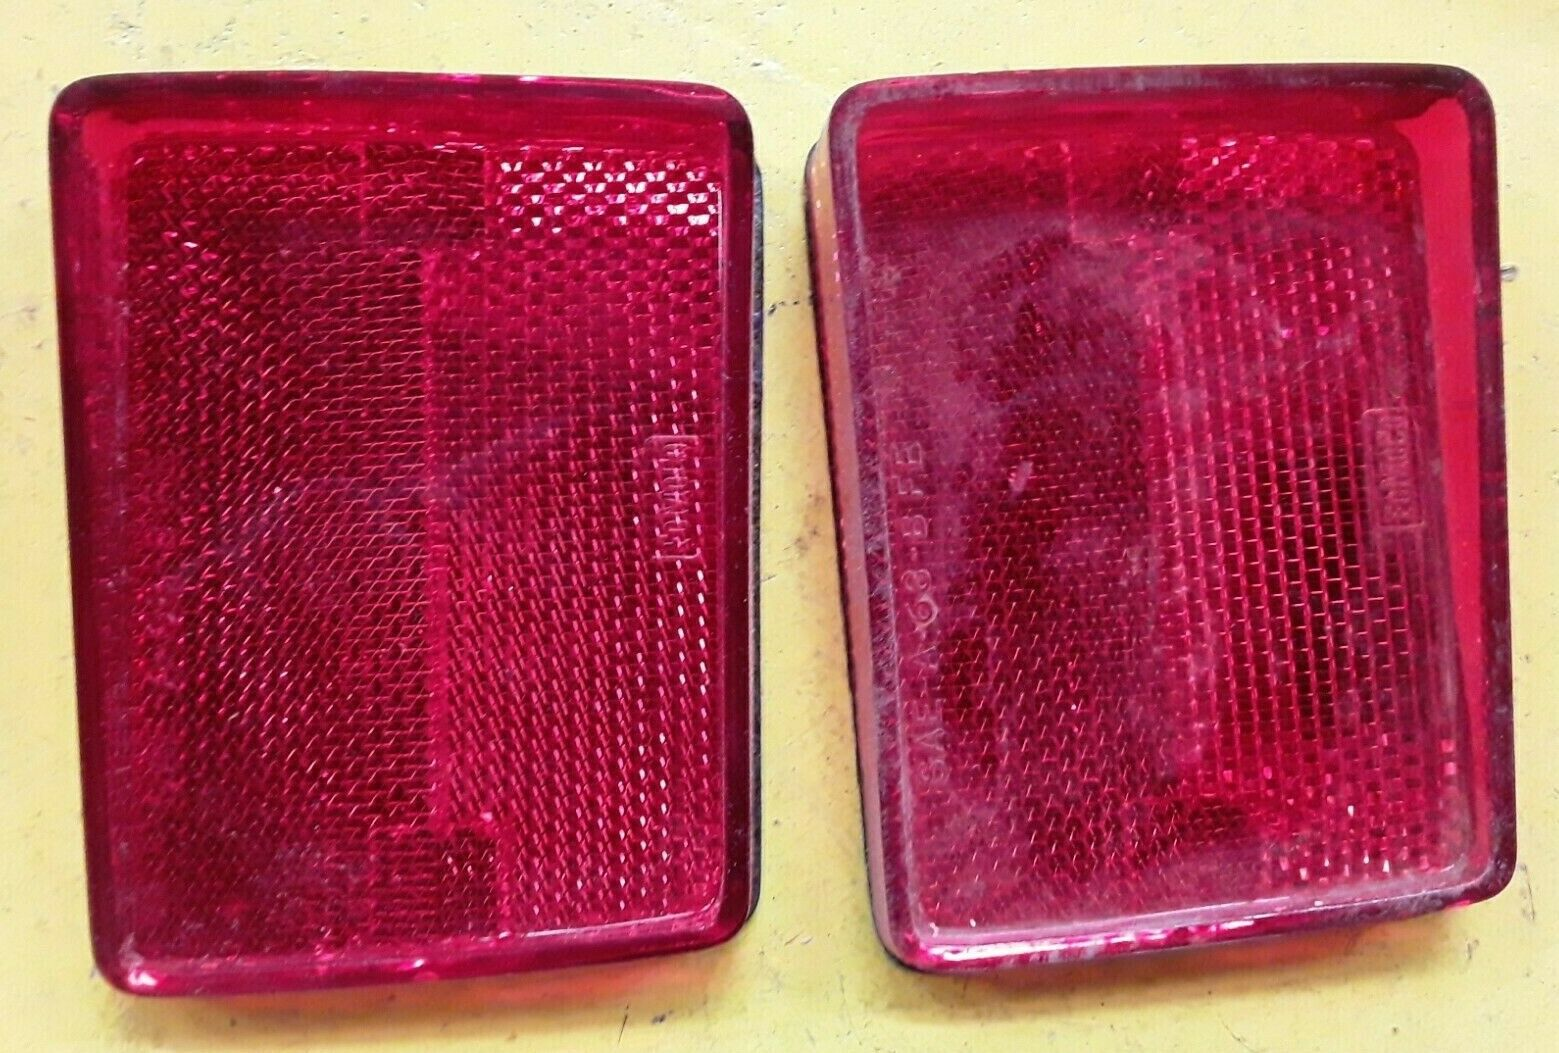 NOS 1968 Ford Torino Fairlane Fastback RH Rear Reflector C80Z-13380-D (QTY 2)